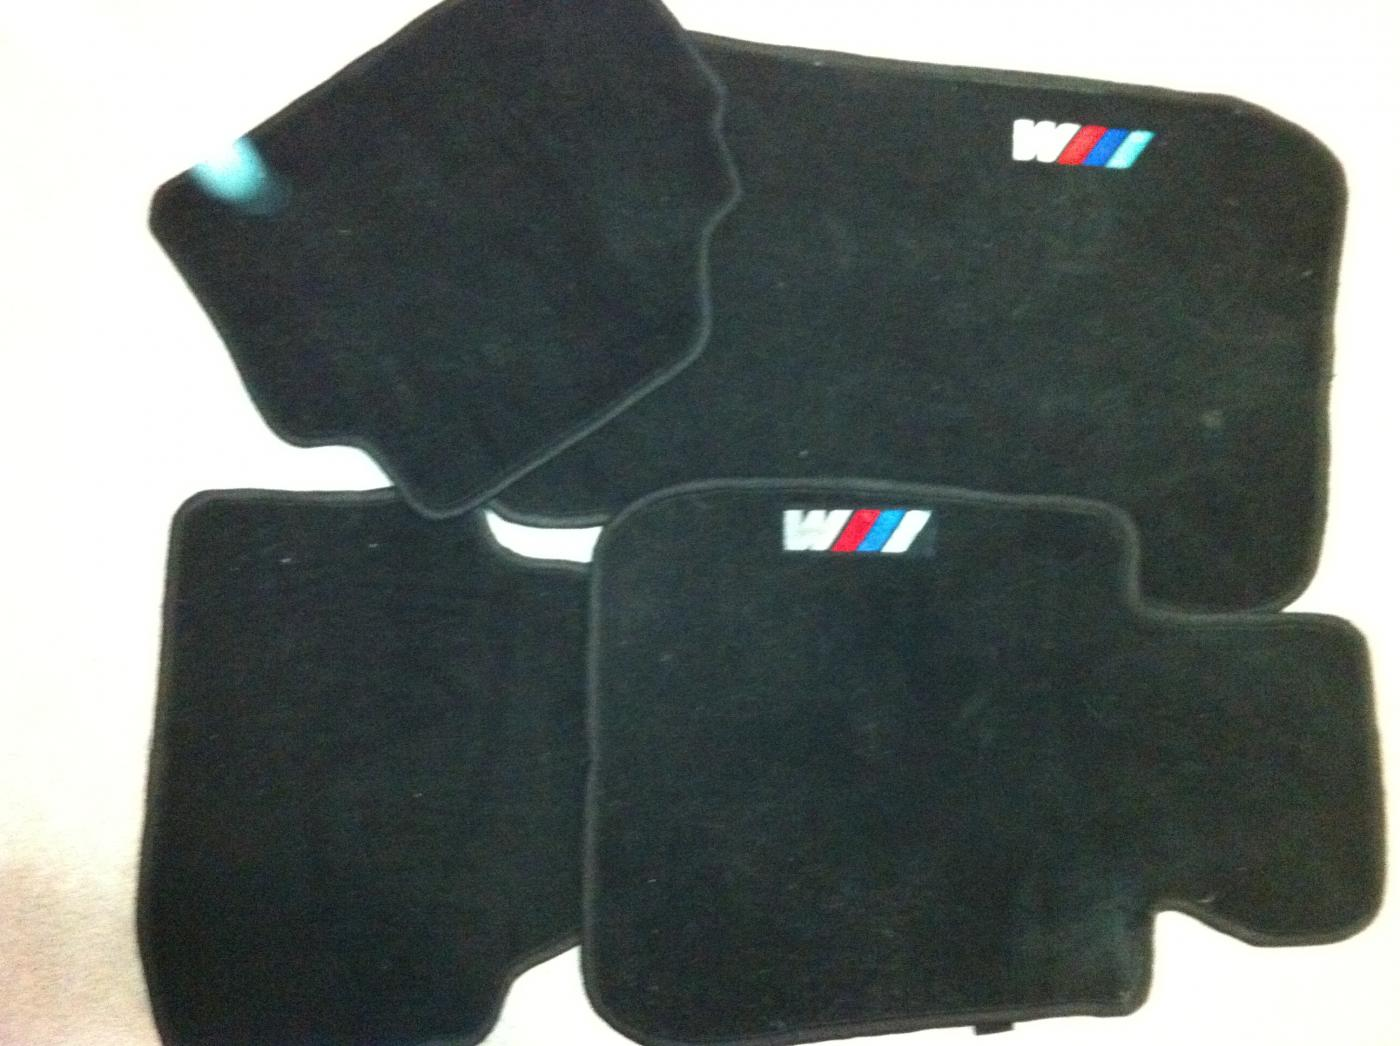 Bmw floor mats z4 - Name Picture 003 Jpg Views 4683 Size 142 7 Kb